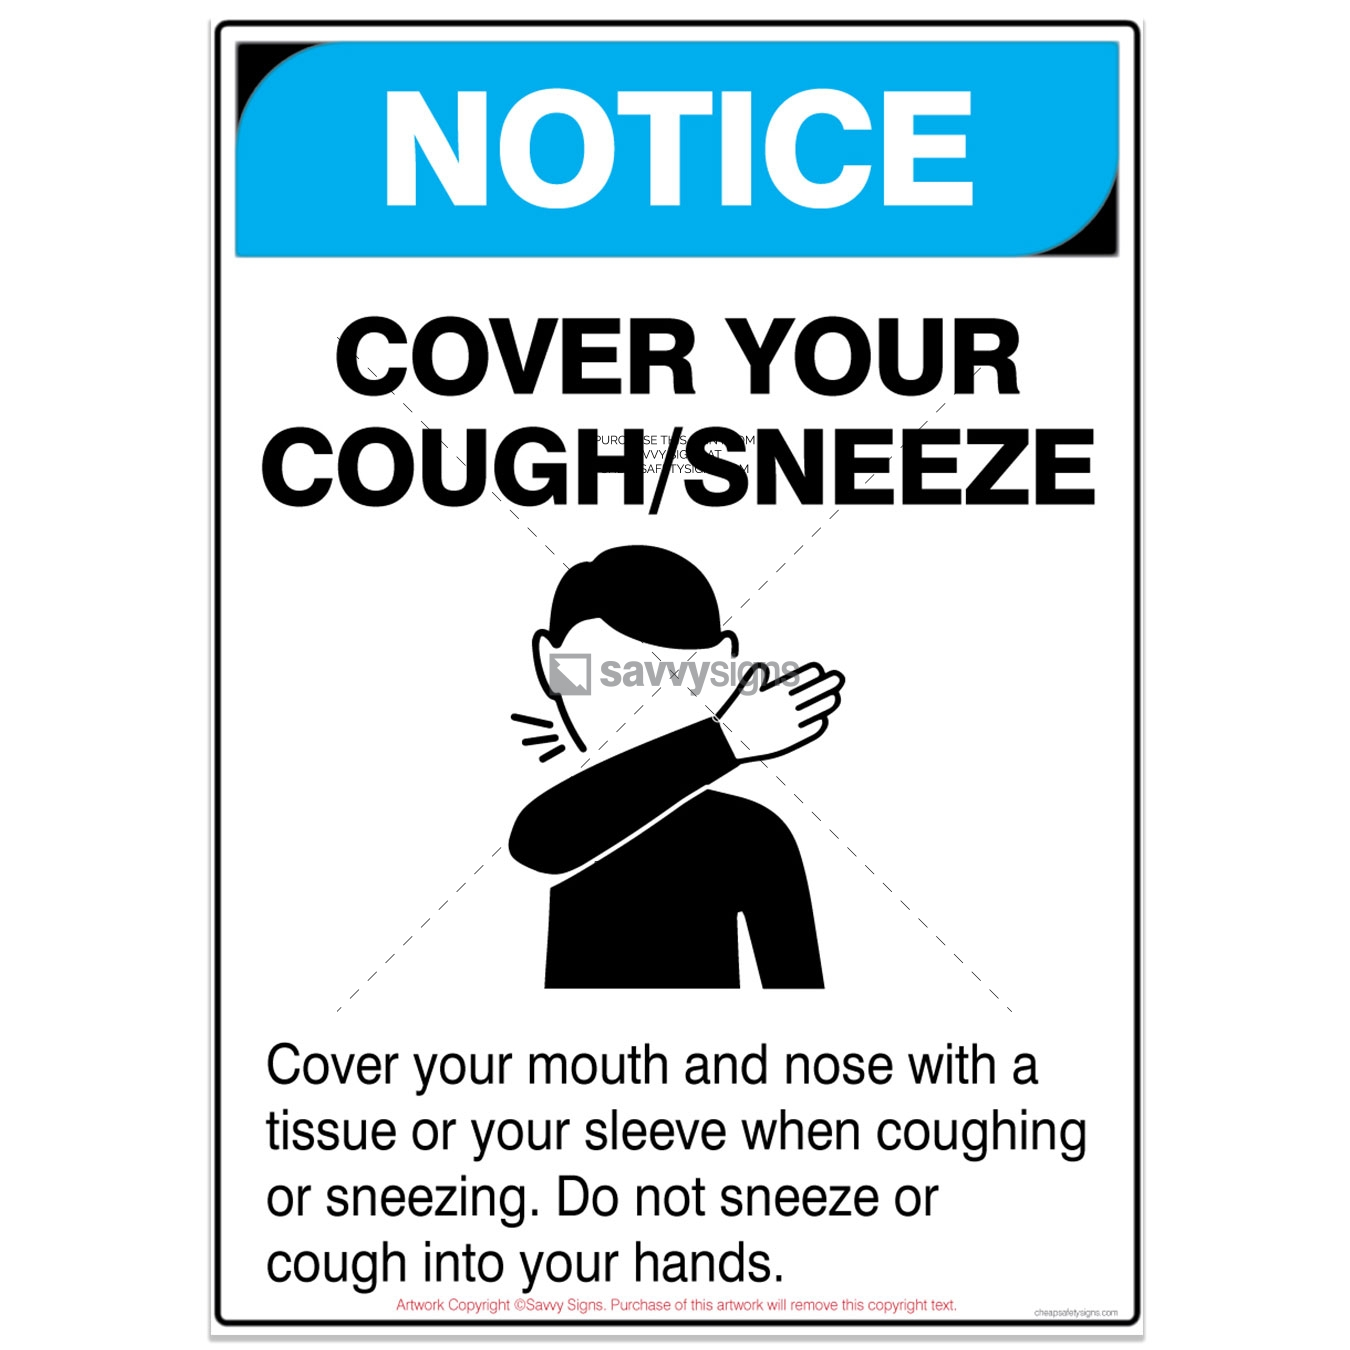 SSNOCOV3P015-COVID19-NOTICE-Cover-Your-Mouth-With-Sleeve-Safety-Signs_vsq3